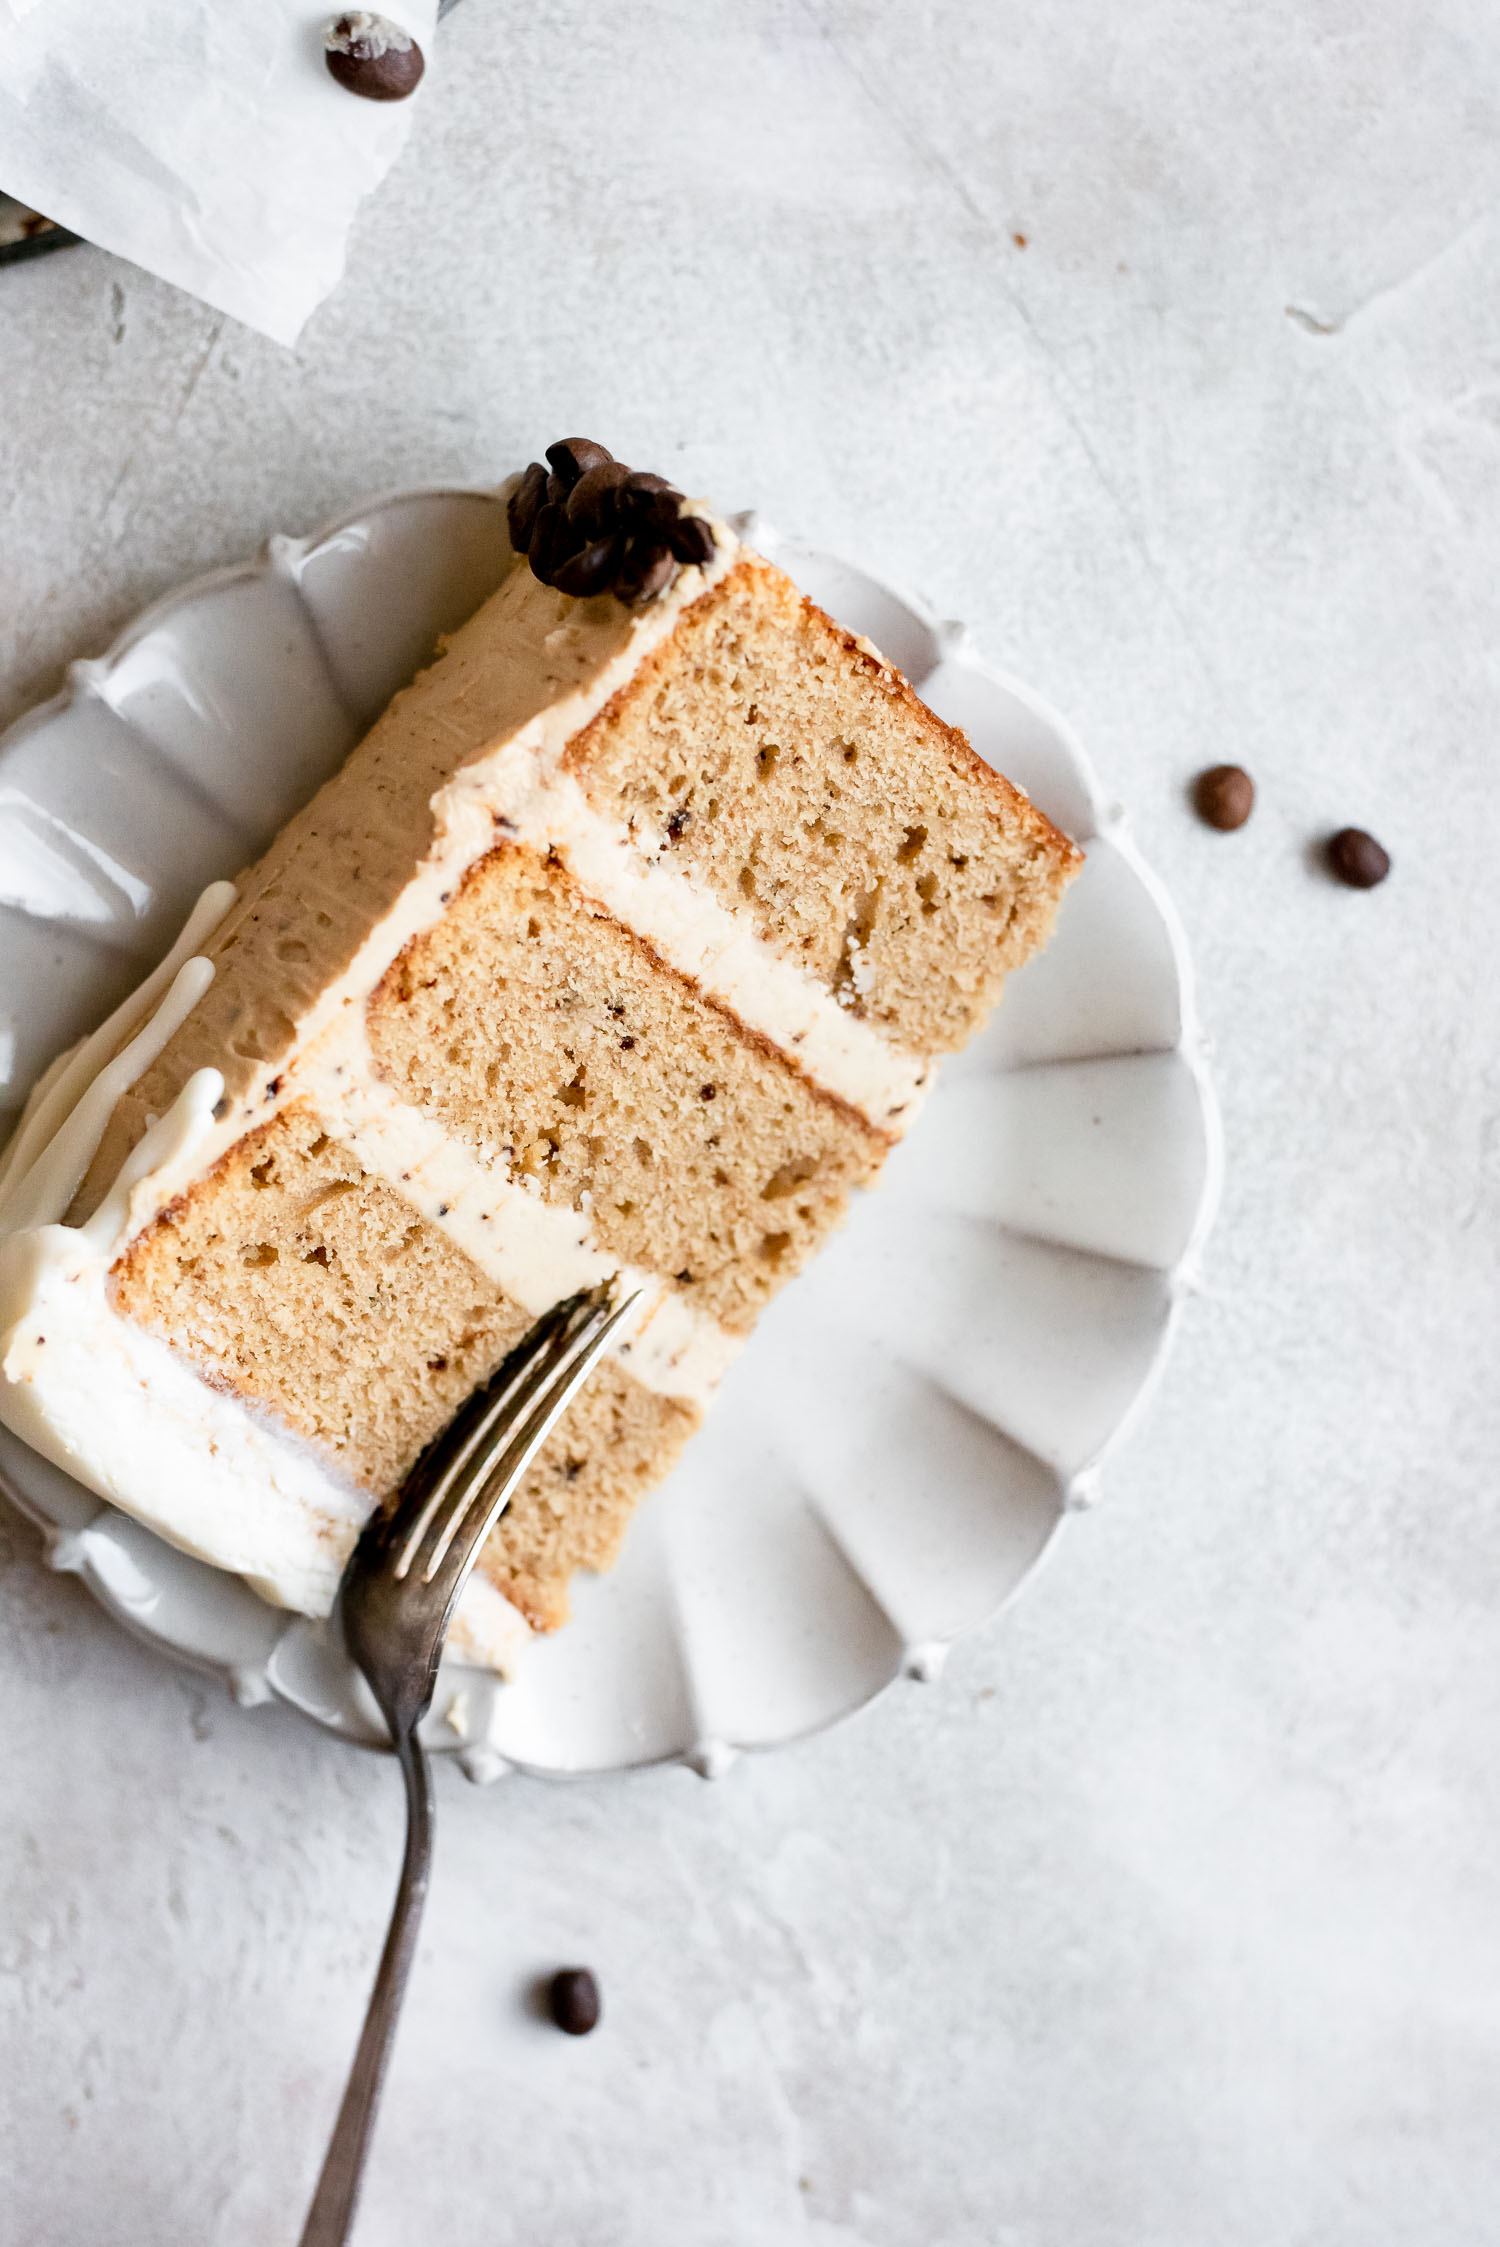 white chocolate mocha cake slice on white ruffle-rimmed plate with fork cutting into cake